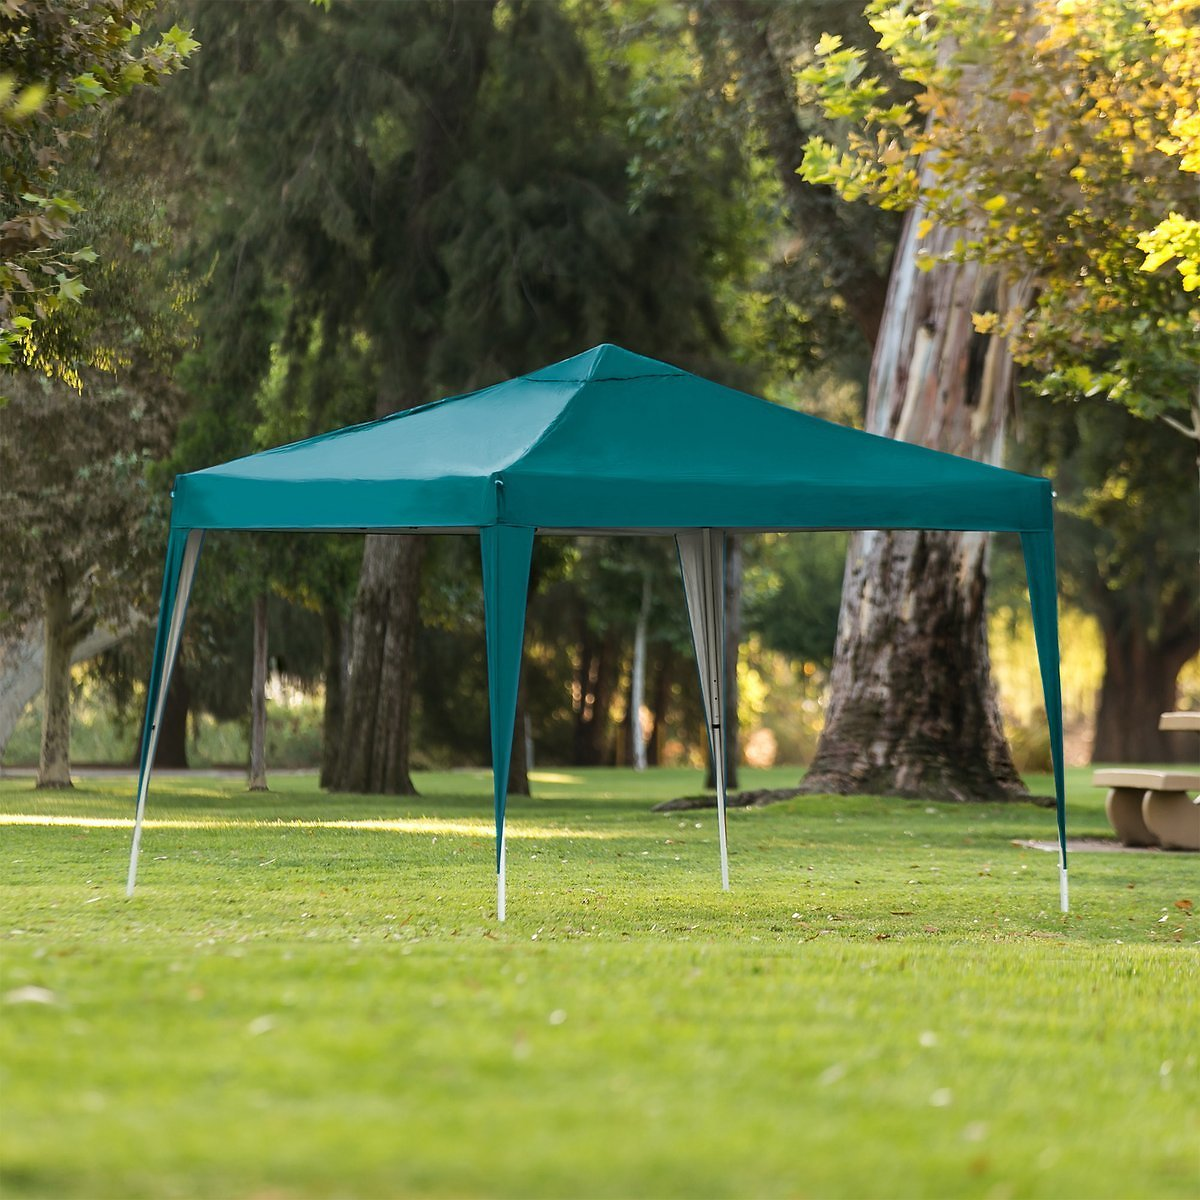 Outdoor Portable Pop Up Canopy Tent w/ Carrying Case, 10x10ft